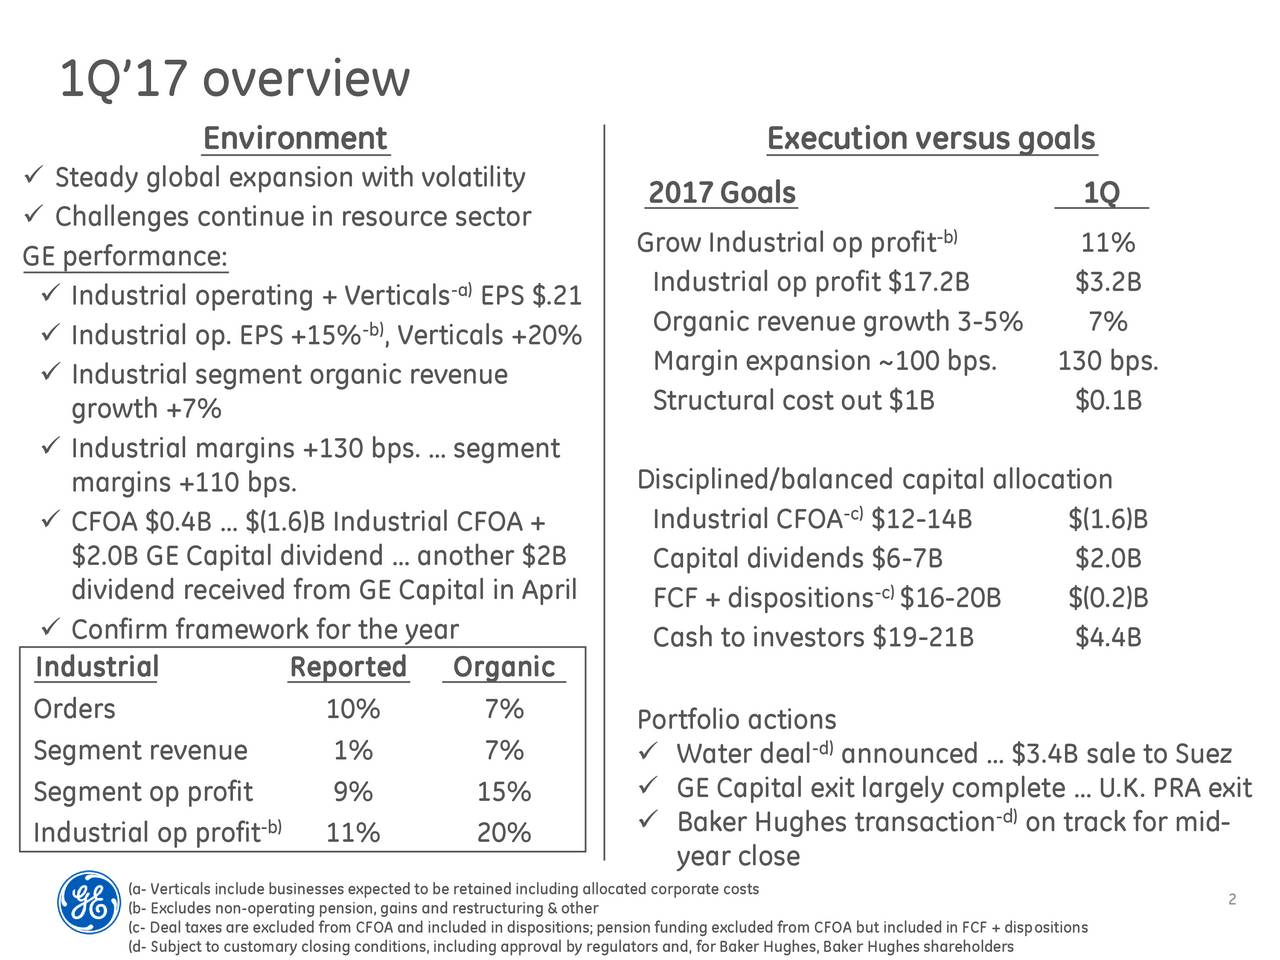 Environment Execution versus goals Steady global expansion with volatility 2017 Goals 1Q Challenges continue in resource sector -b) GE performance: Grow Industrial op profit 11% -a) Industrial op profit $17.2B $3.2B Industrial operating + Verticals EPS $.21 Industrial op. EPS +15% , Verticals +20% Organic revenue growth 3-5% 7% Margin expansion ~100 bps. 130 bps. Industrial segment organic revenue growth +7% Structural cost out $1B $0.1B Industrial margins +130 bps.  segment margins +110 bps. Disciplined/balanced capital allocation CFOA $0.4B  $(1.6)B Industrial CFOA + Industrial CFOA-c$12-14B $(1.6)B $2.0B GE Capital dividend  another $2B Capital dividends $6-7B $2.0B dividend received from GE Capital in April FCF + dispositions $16-20B $(0.2)B Confirm framework for the year Cash to investors $19-21B $4.4B Industrial Reported Organic Orders 10% 7% Portfolio actions Segment revenue 1% 7%  Water deal -d)announced  $3.4B sale to Suez Segment op profit 9% 15%  GE Capital exit largely complete  U.K. PRA exit Industrial op profit) 11% 20%  Baker Hughes transaction -don track for mid- year close (a- Verticals include businesses expected to be retained including allocated corporate costs (b- Excludes non-operating pension, gains and restructuring & other 2 (c- Deal taxes are excluded from CFOA and included in dispositions; pension funding excluded from CFOA but included in FCF + dispositions